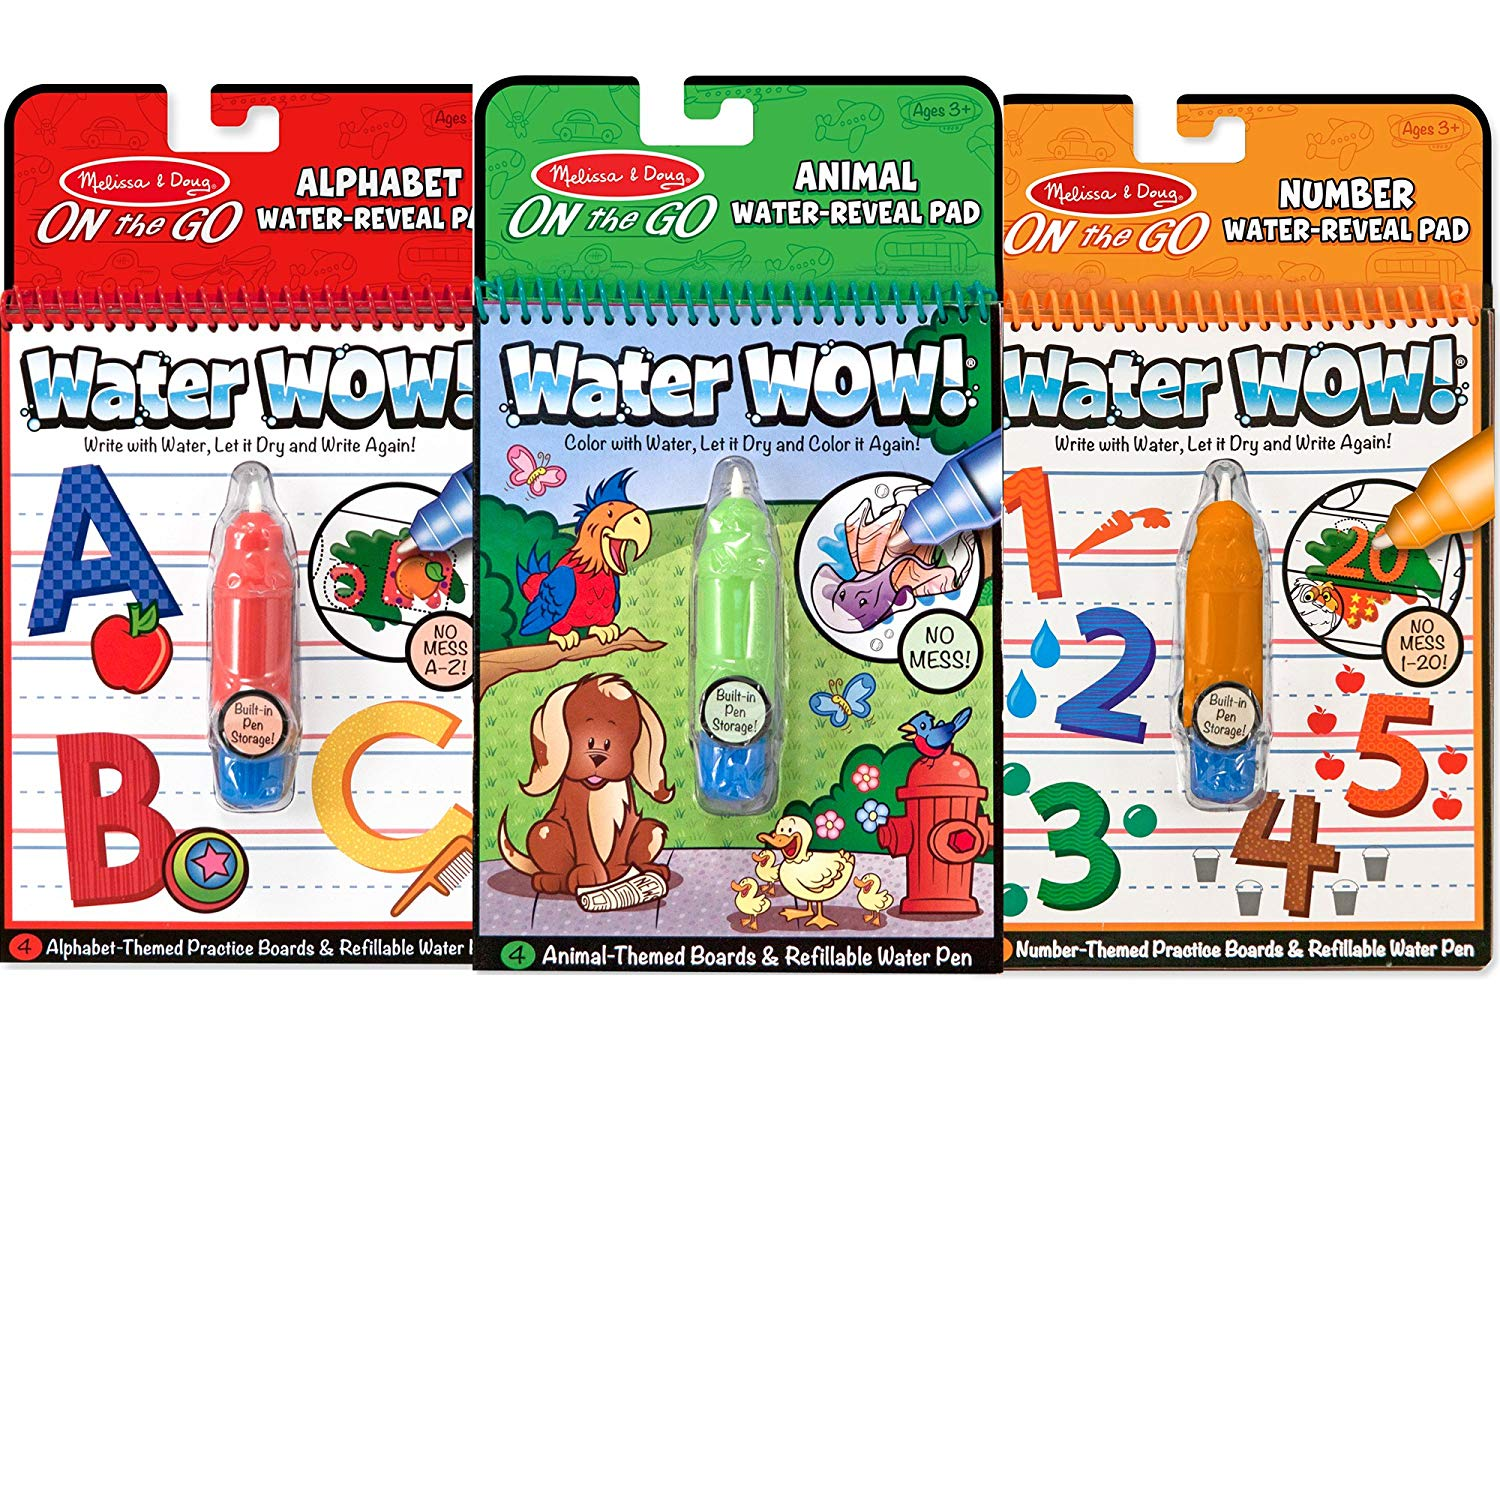 Water Wow doodle pads for kids.